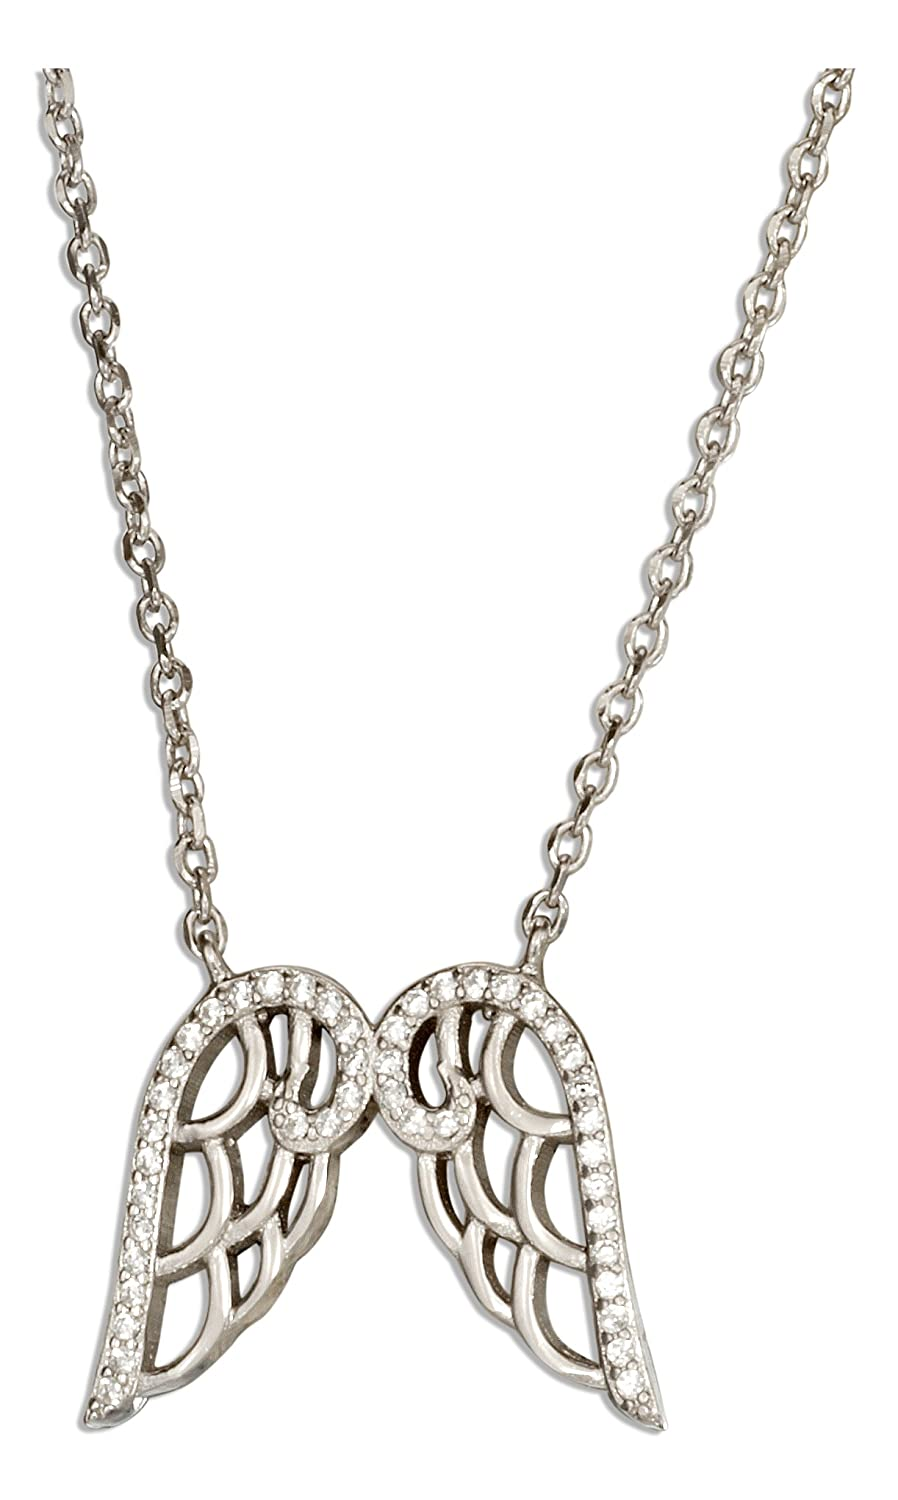 Sterling Silver 16 inch to 17 inch Adjustable Micro Pave Cubic Zirconia Angel Wings Necklace